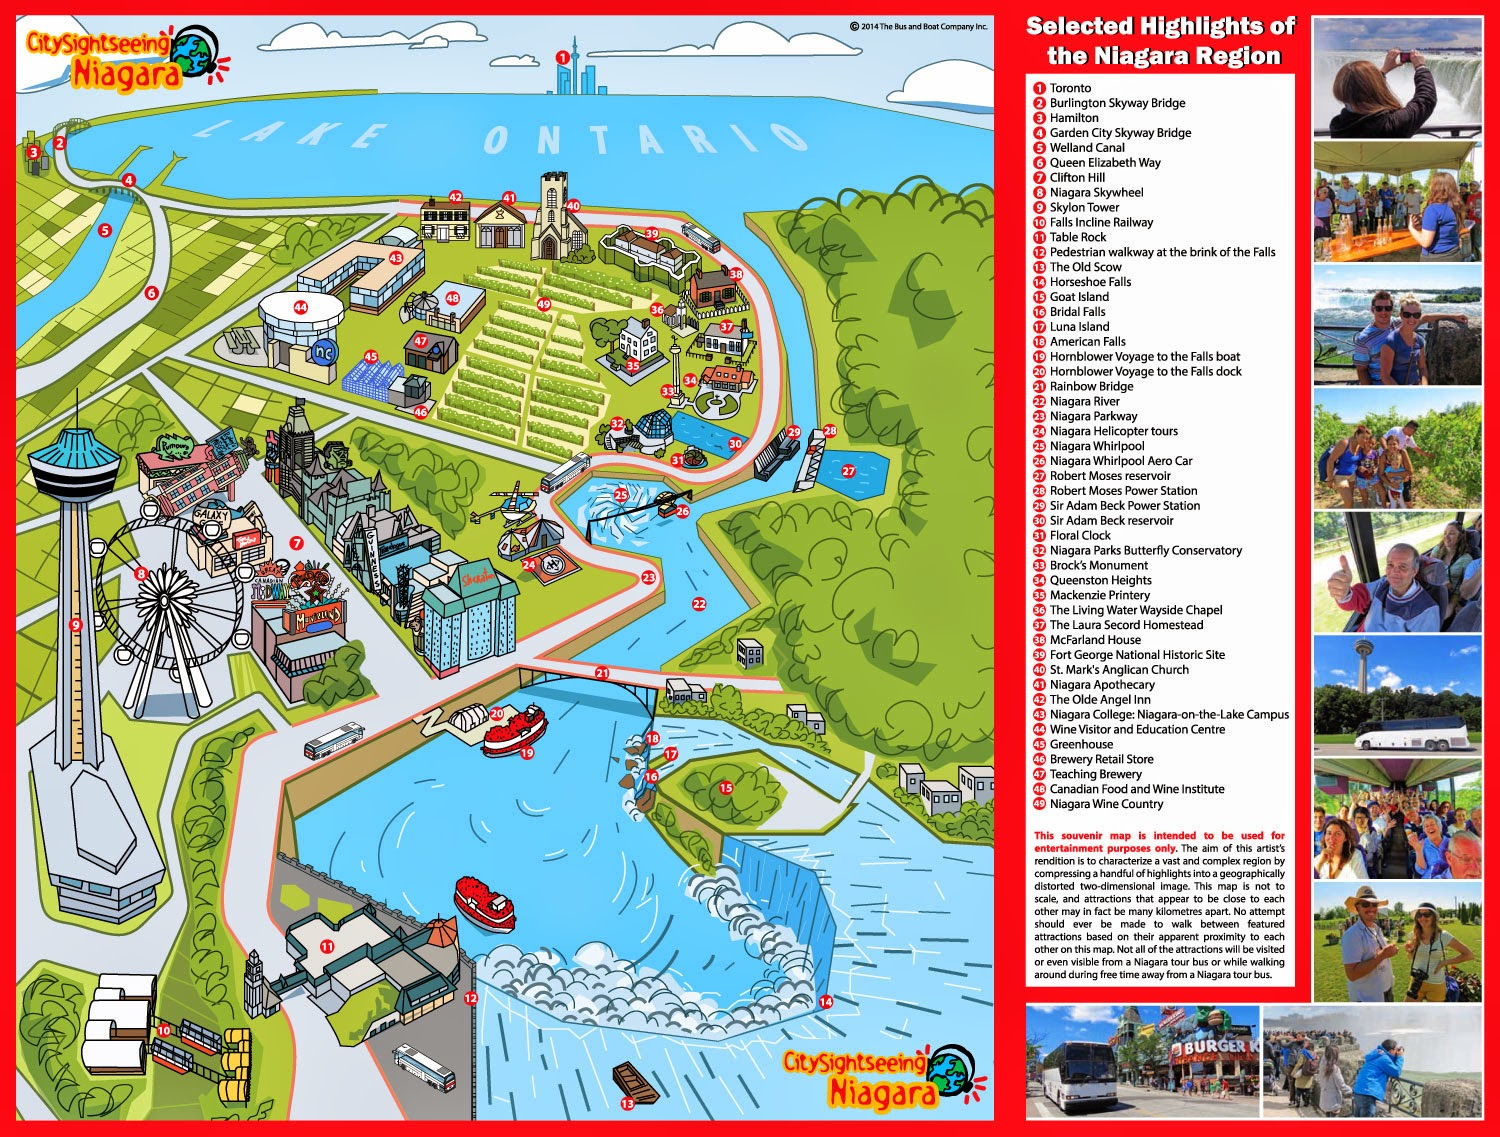 Maps of Niagara Falls for travelers.